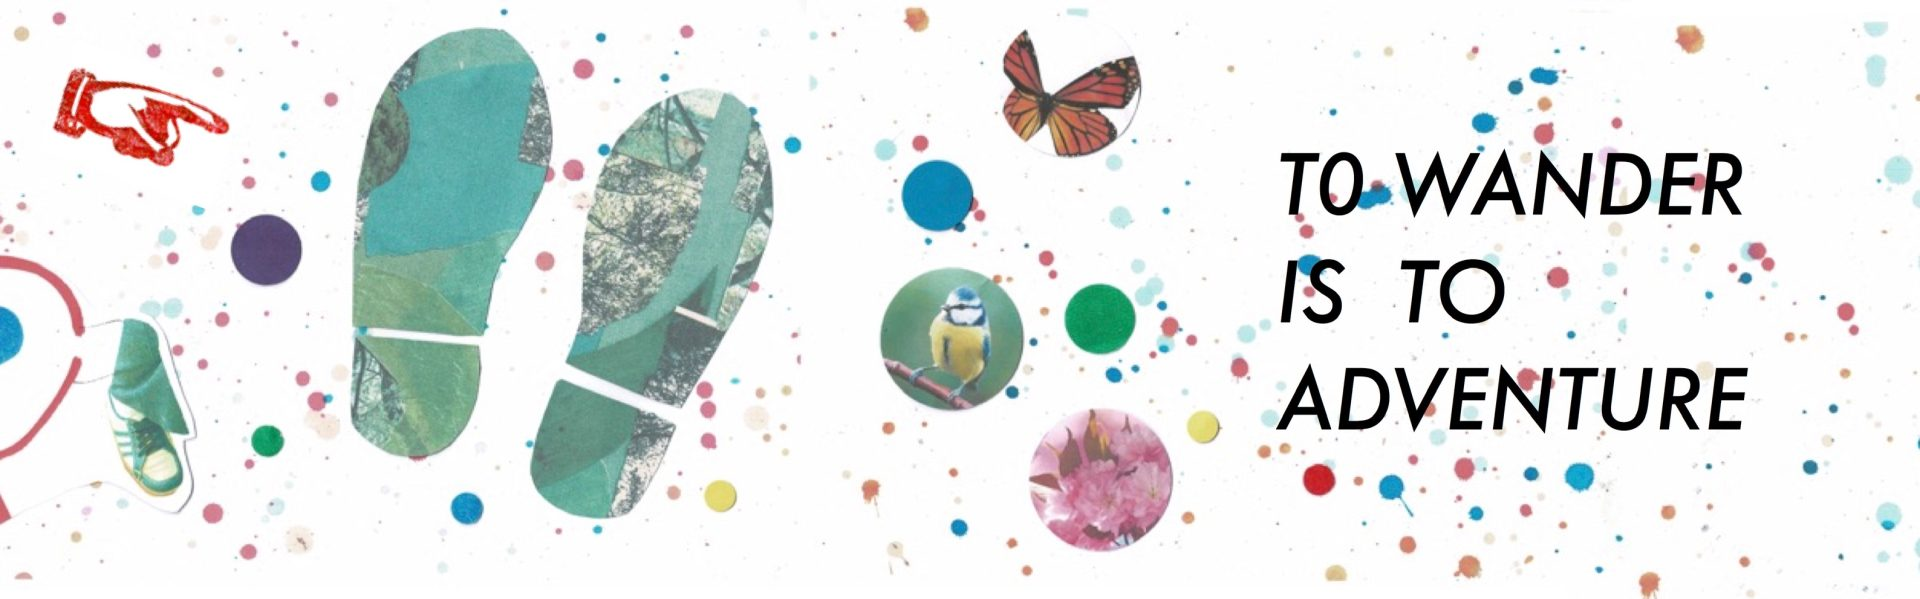 A collage image with images of feet cut outs, a pointing finger, a bird, butterfly, cherry blossoms against a background of colourful ink splatters, with the words To Wander Is To Adventure